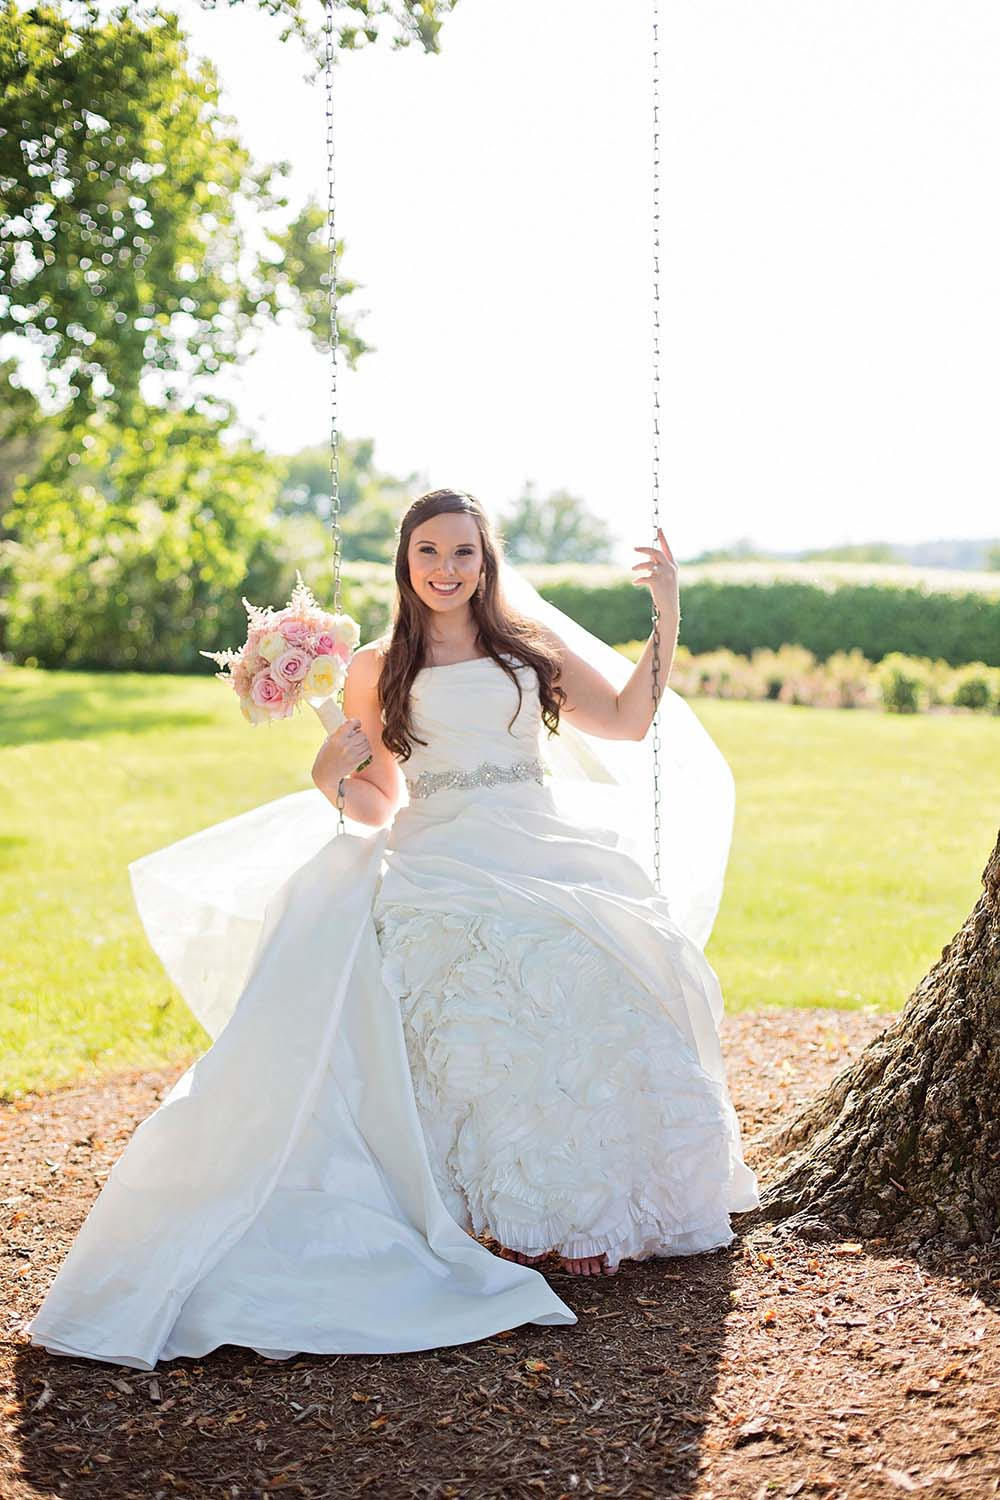 2016-2017 Bride of the Year